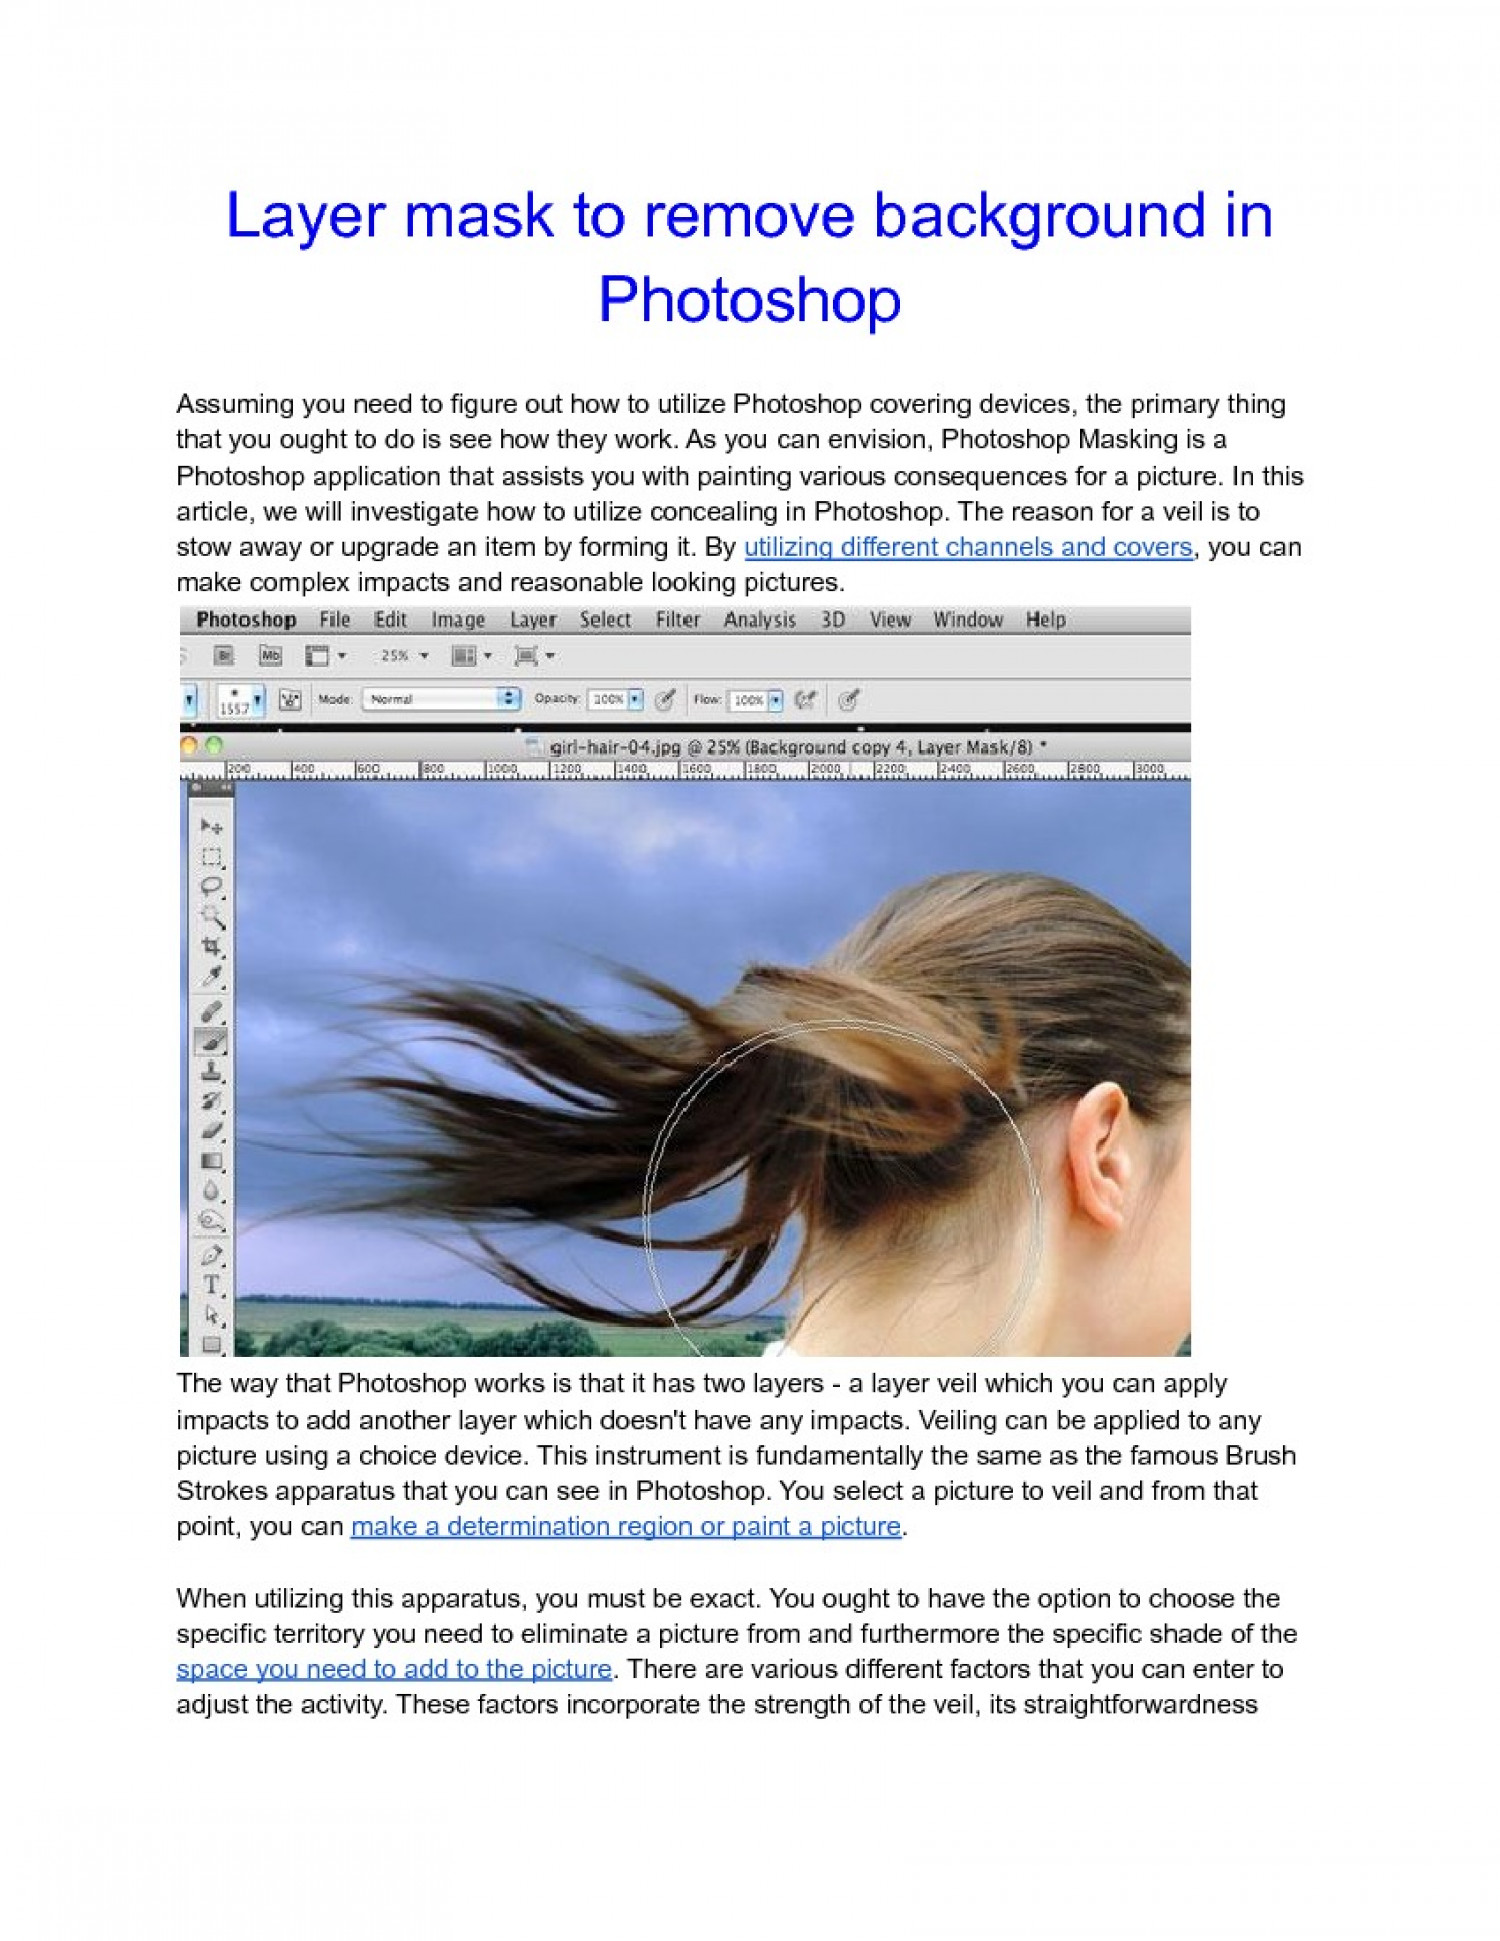 Layer mask to remove background in Photoshop Infographic